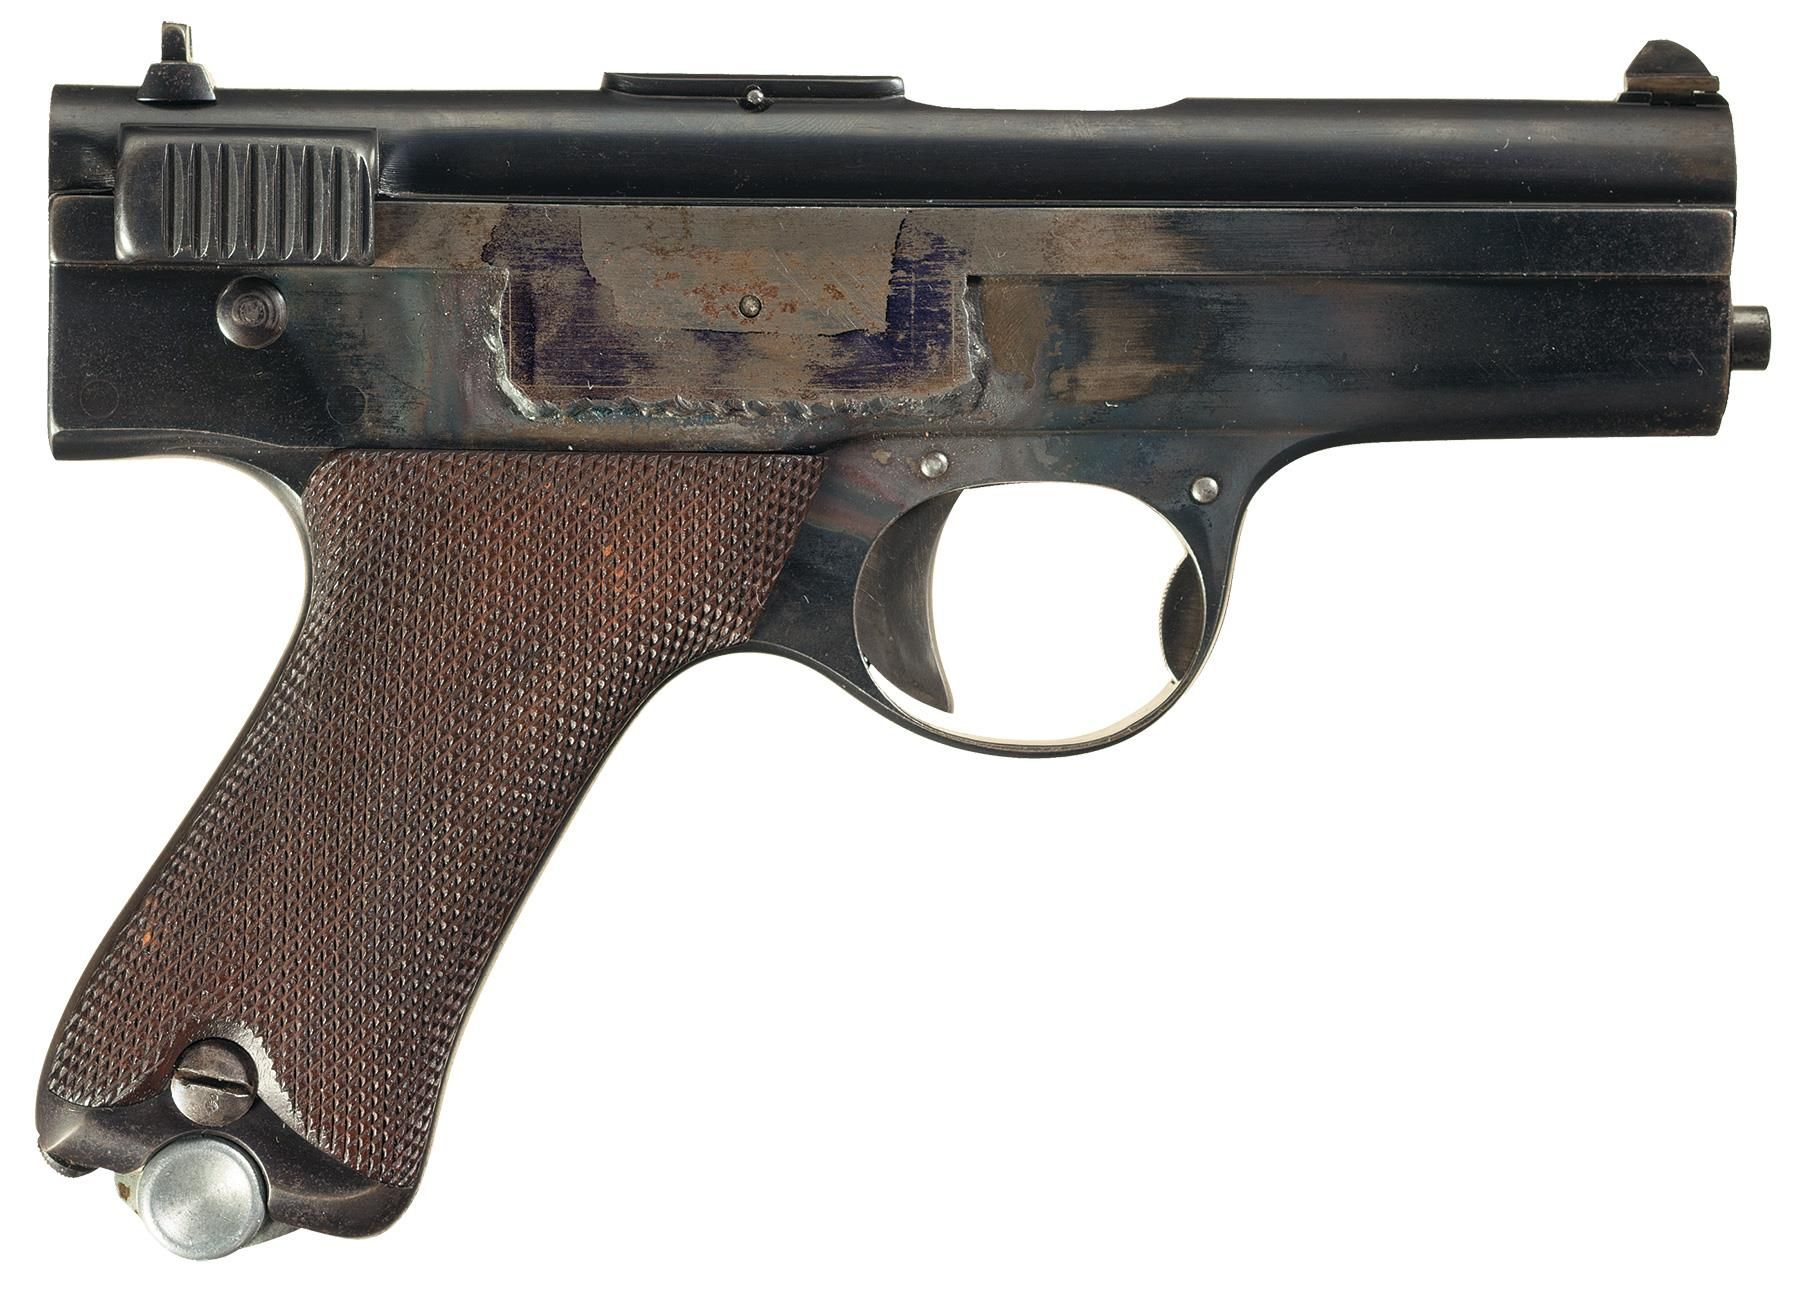 Spp 1 underwater pistol - Mannlicher Self Loading Pistol M1894 Blow Forward Action Unique Firearms Pinterest Guns Weapons And Revolvers